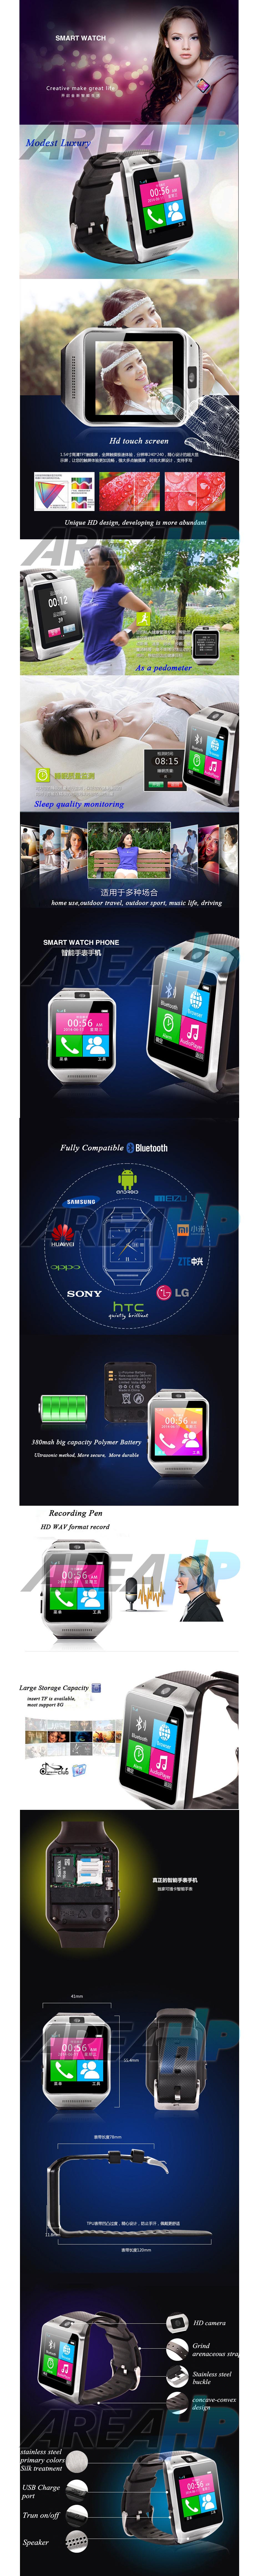 Smart Watch M-Free GV-08 Overview